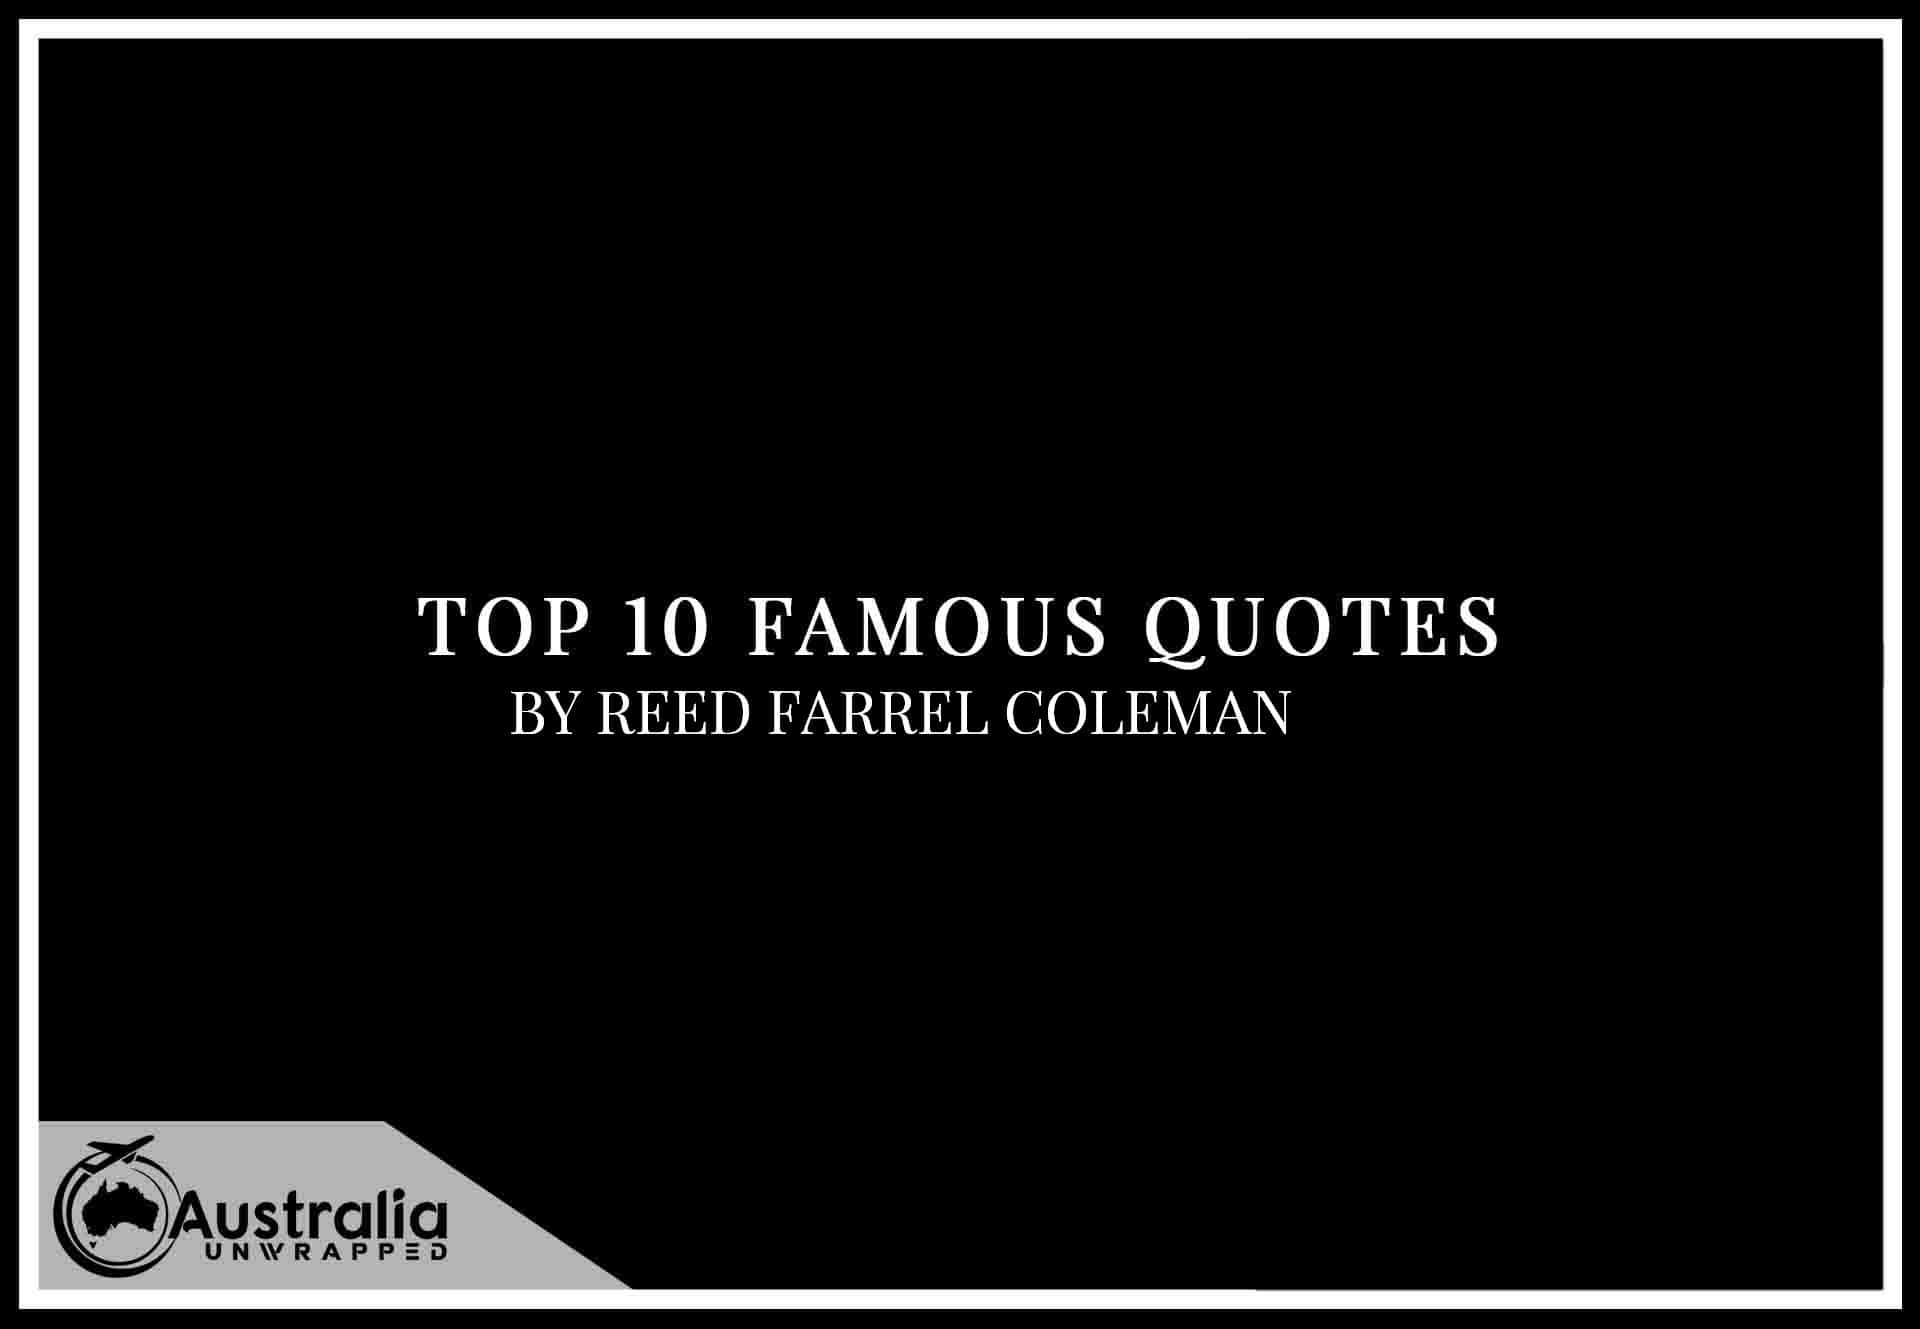 Top 10 Famous Quotes by Author Reed Farrel Coleman